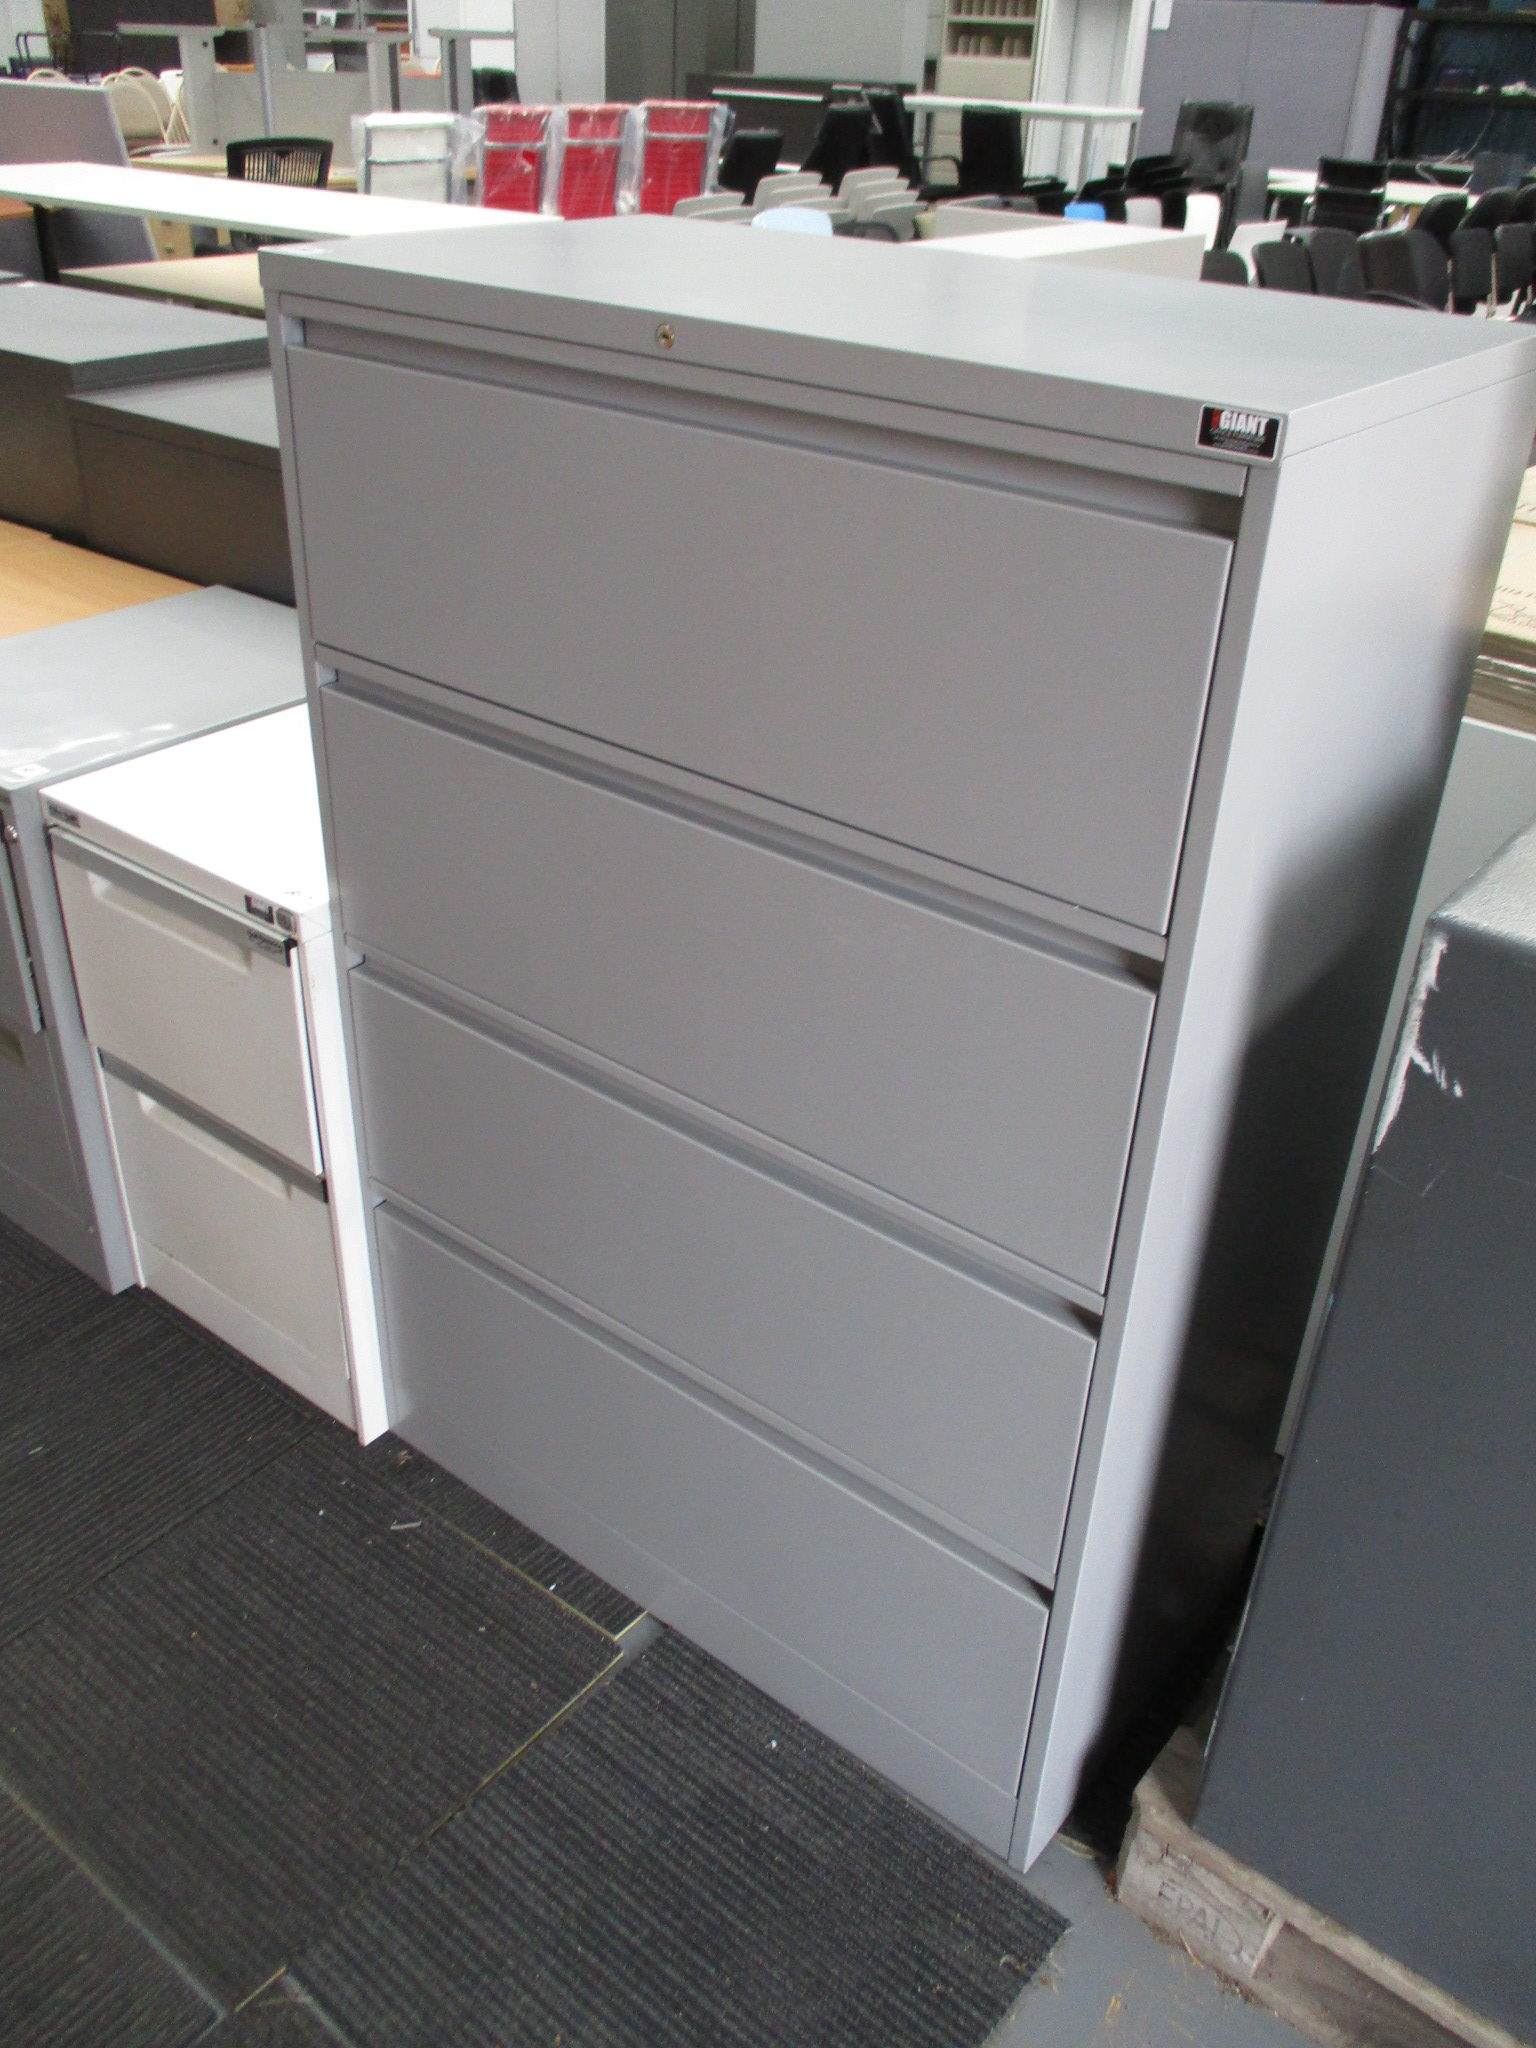 Silver 4 Drawer Lateral Filing Cabinet $490